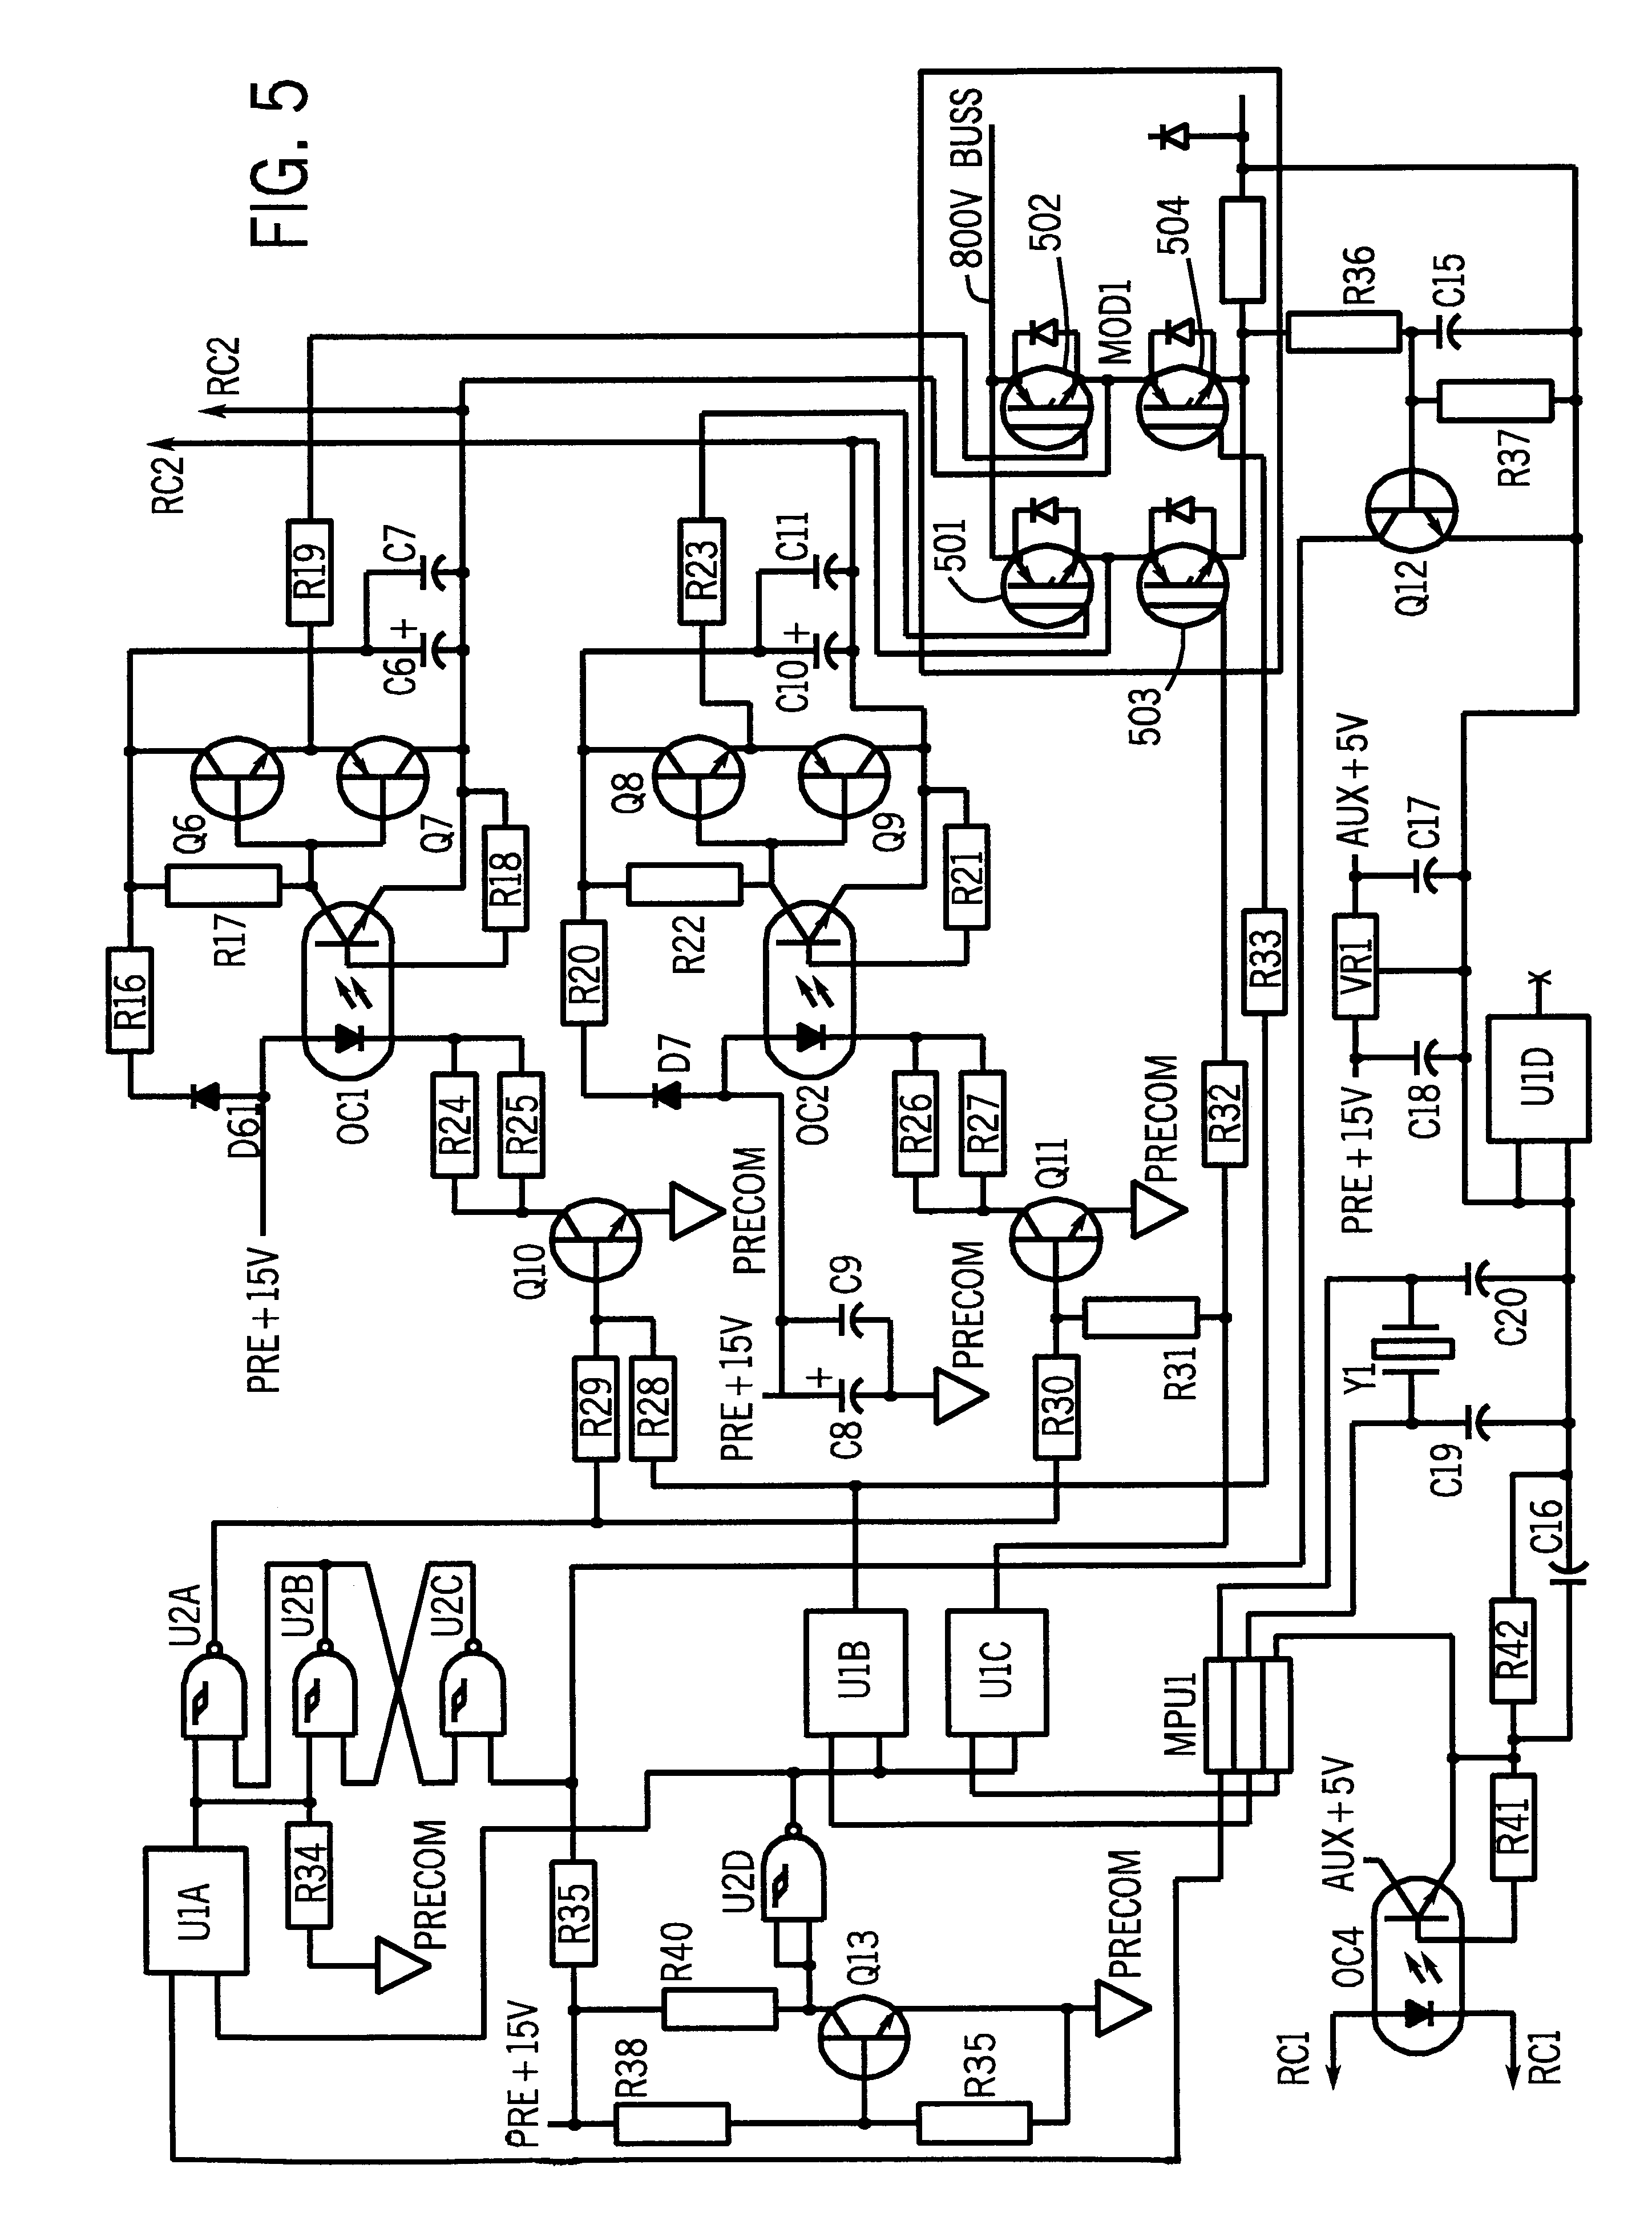 100 208 3 Phase Wiring Diagram | Tractor Wiring And Fuse Box ...  Hp Wiring Diagram Century on hp piping diagram, hp battery diagram, hp computer diagram, hp hardware diagram, hp networking diagram, hp cable diagram, hp parts diagram, hp power supply diagram, hp panel diagram,